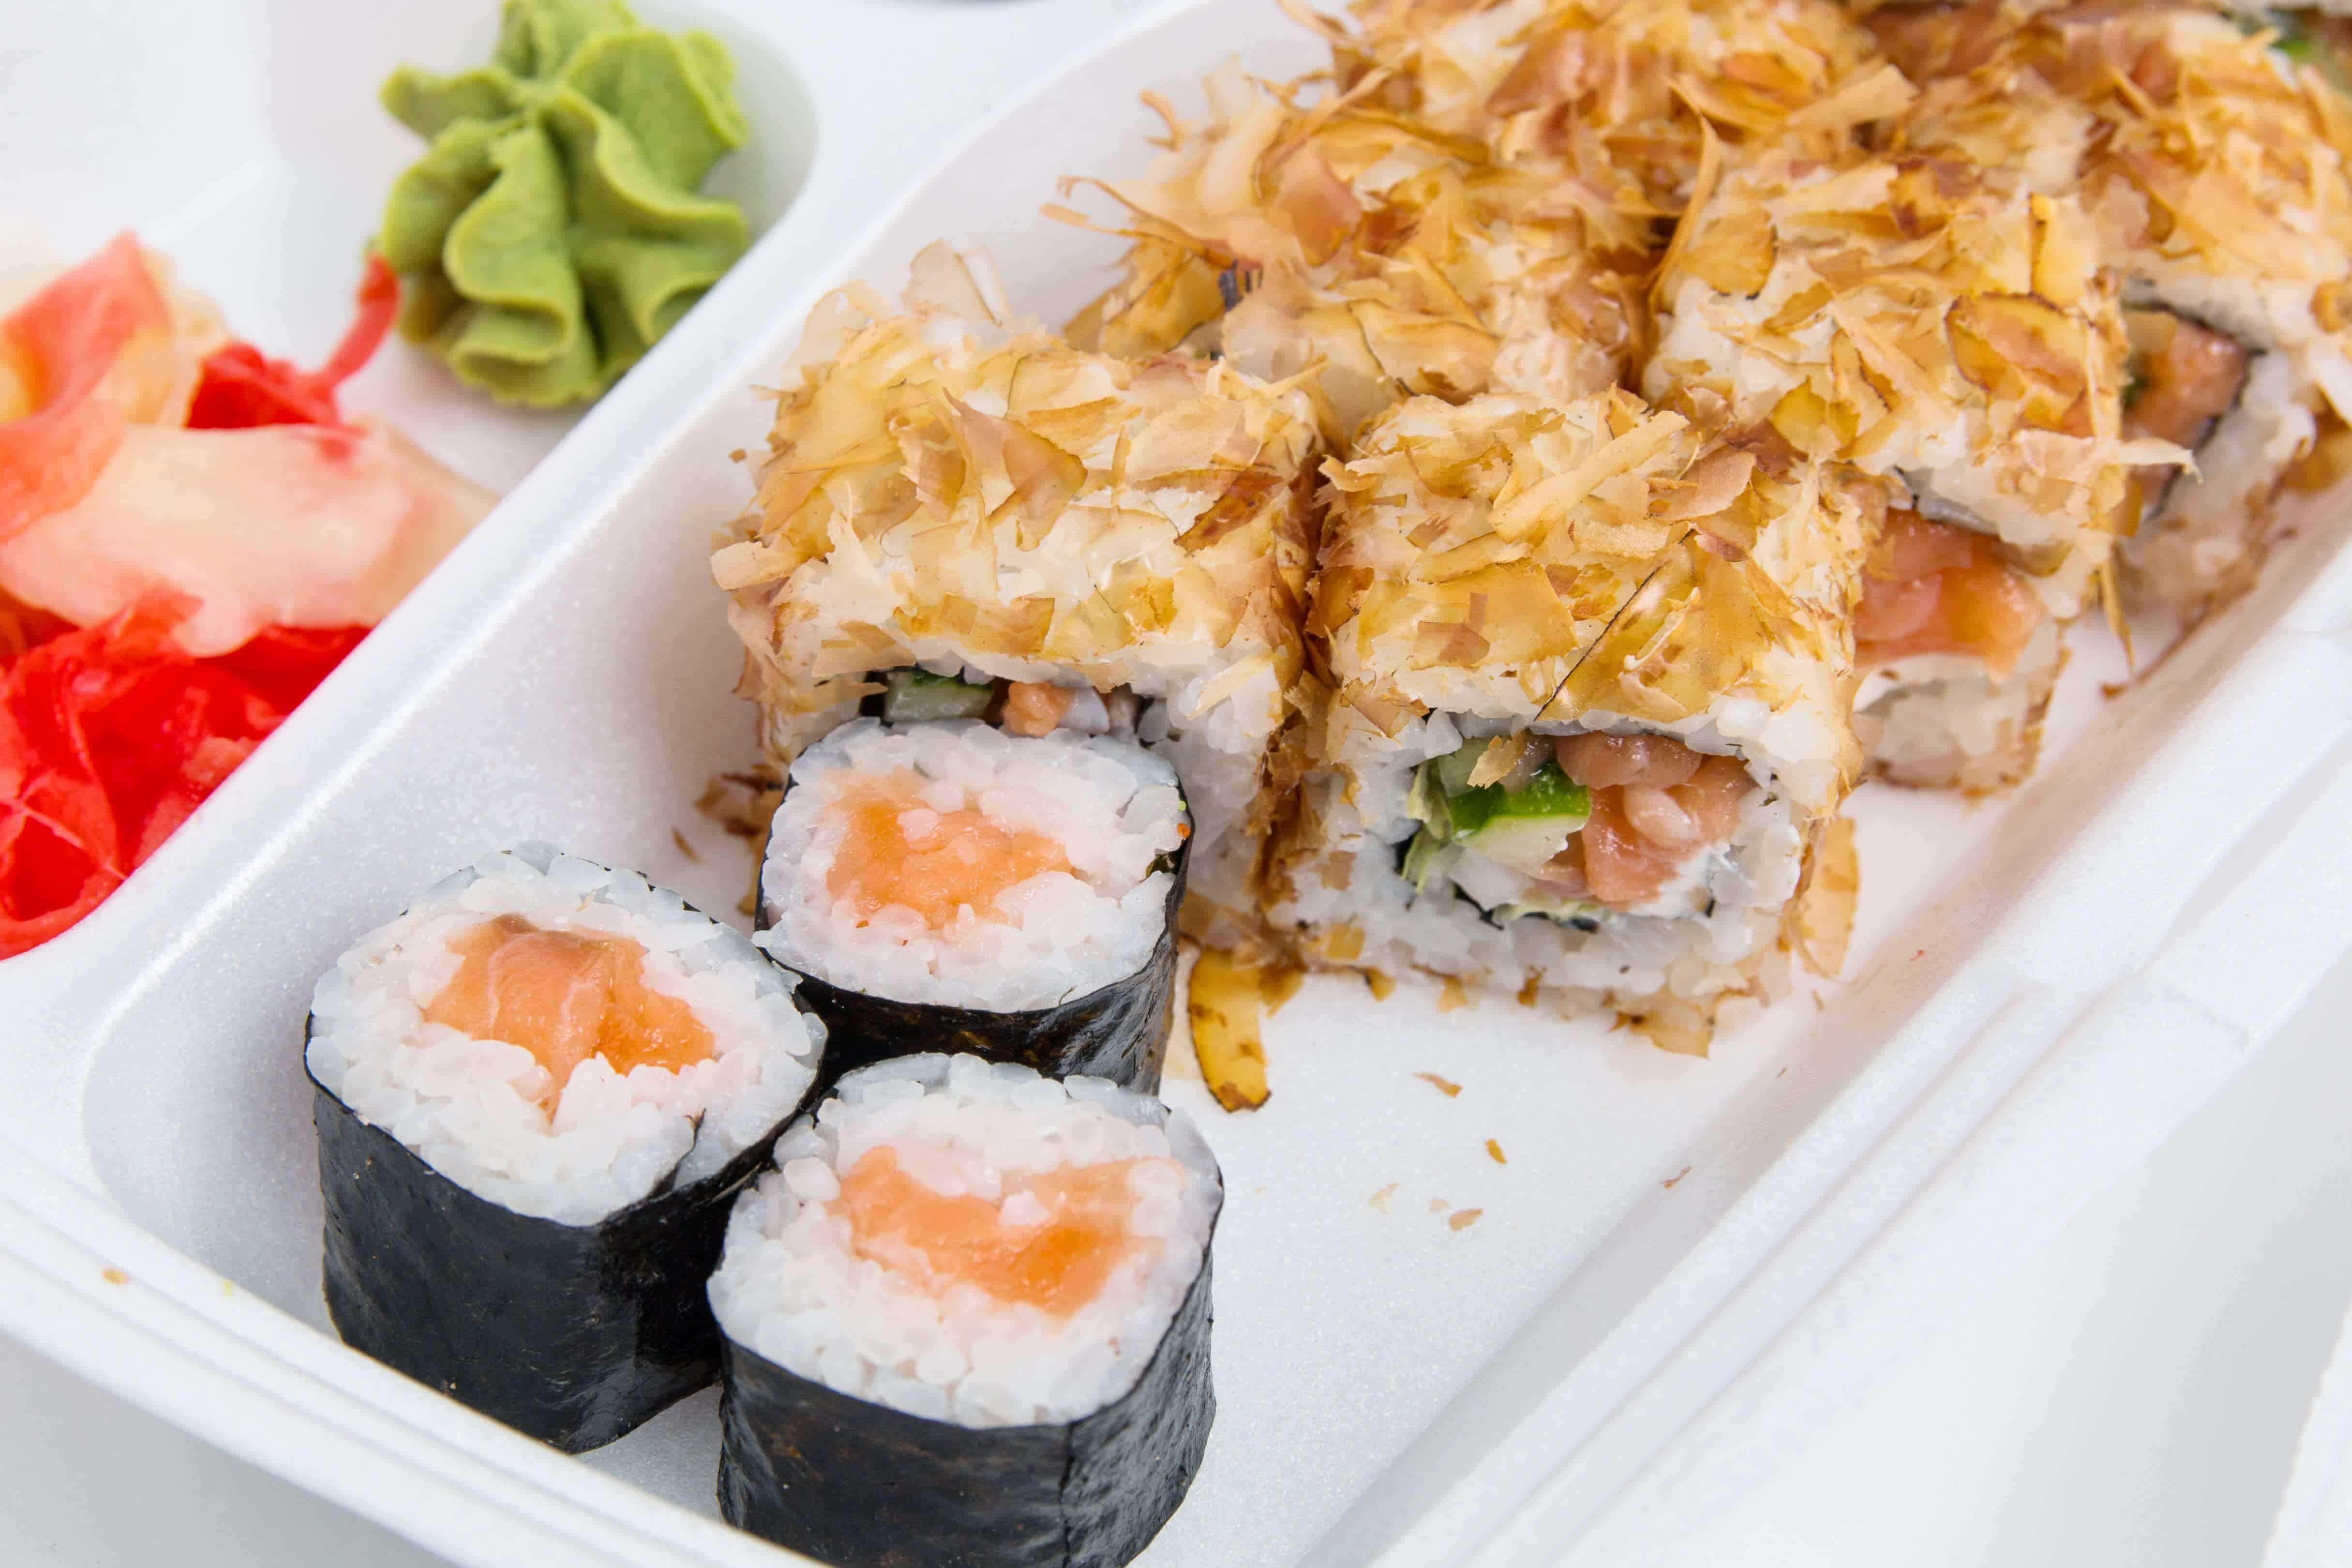 Sushi food delivery